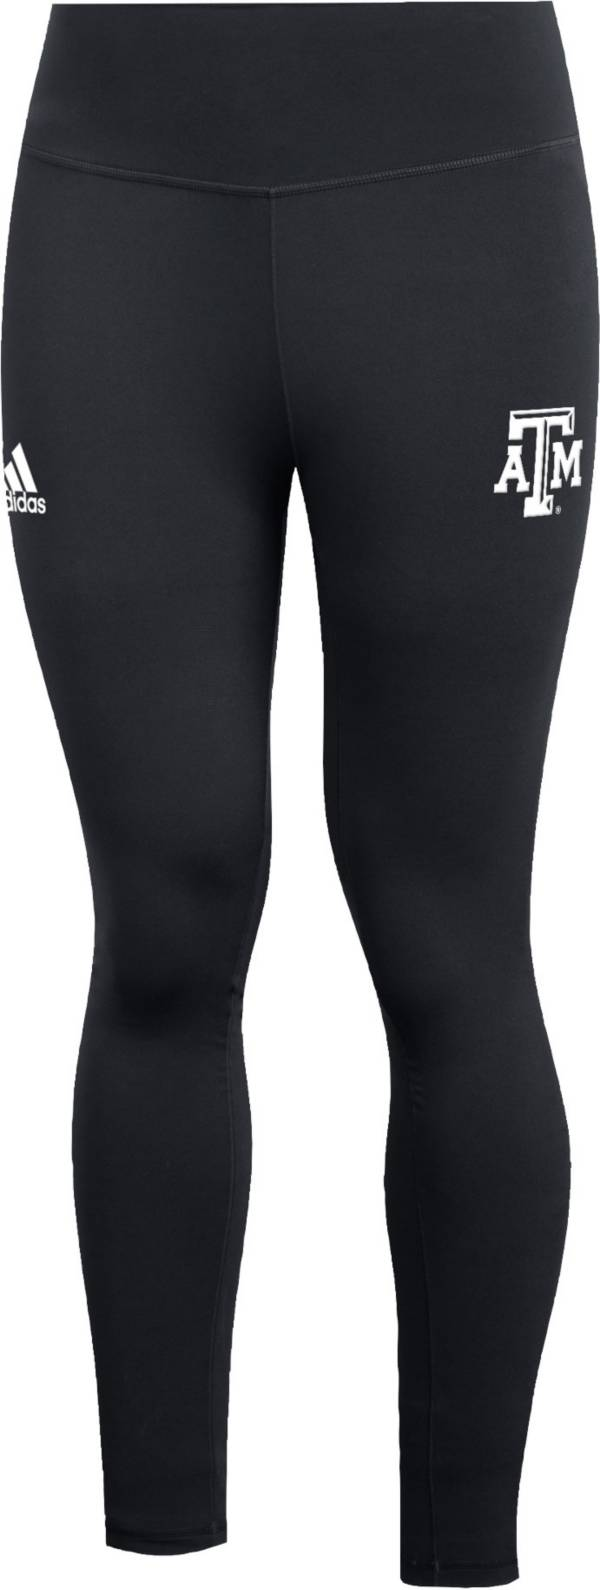 adidas Women's Texas A&M Aggies 7/8 Believe This Performance Black Tights product image